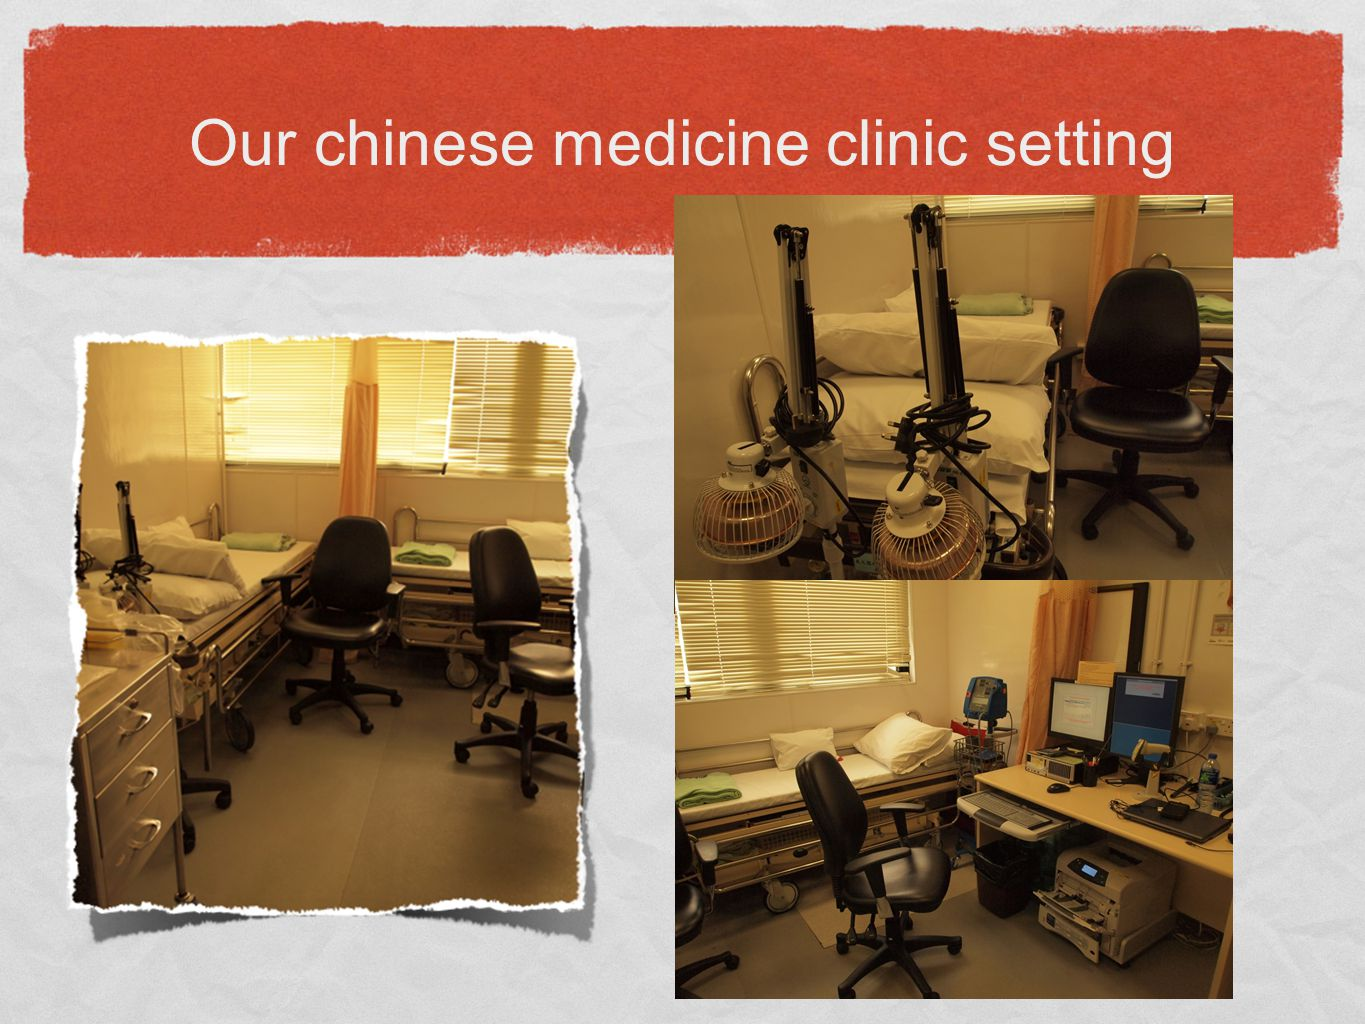 Our chinese medicine clinic setting